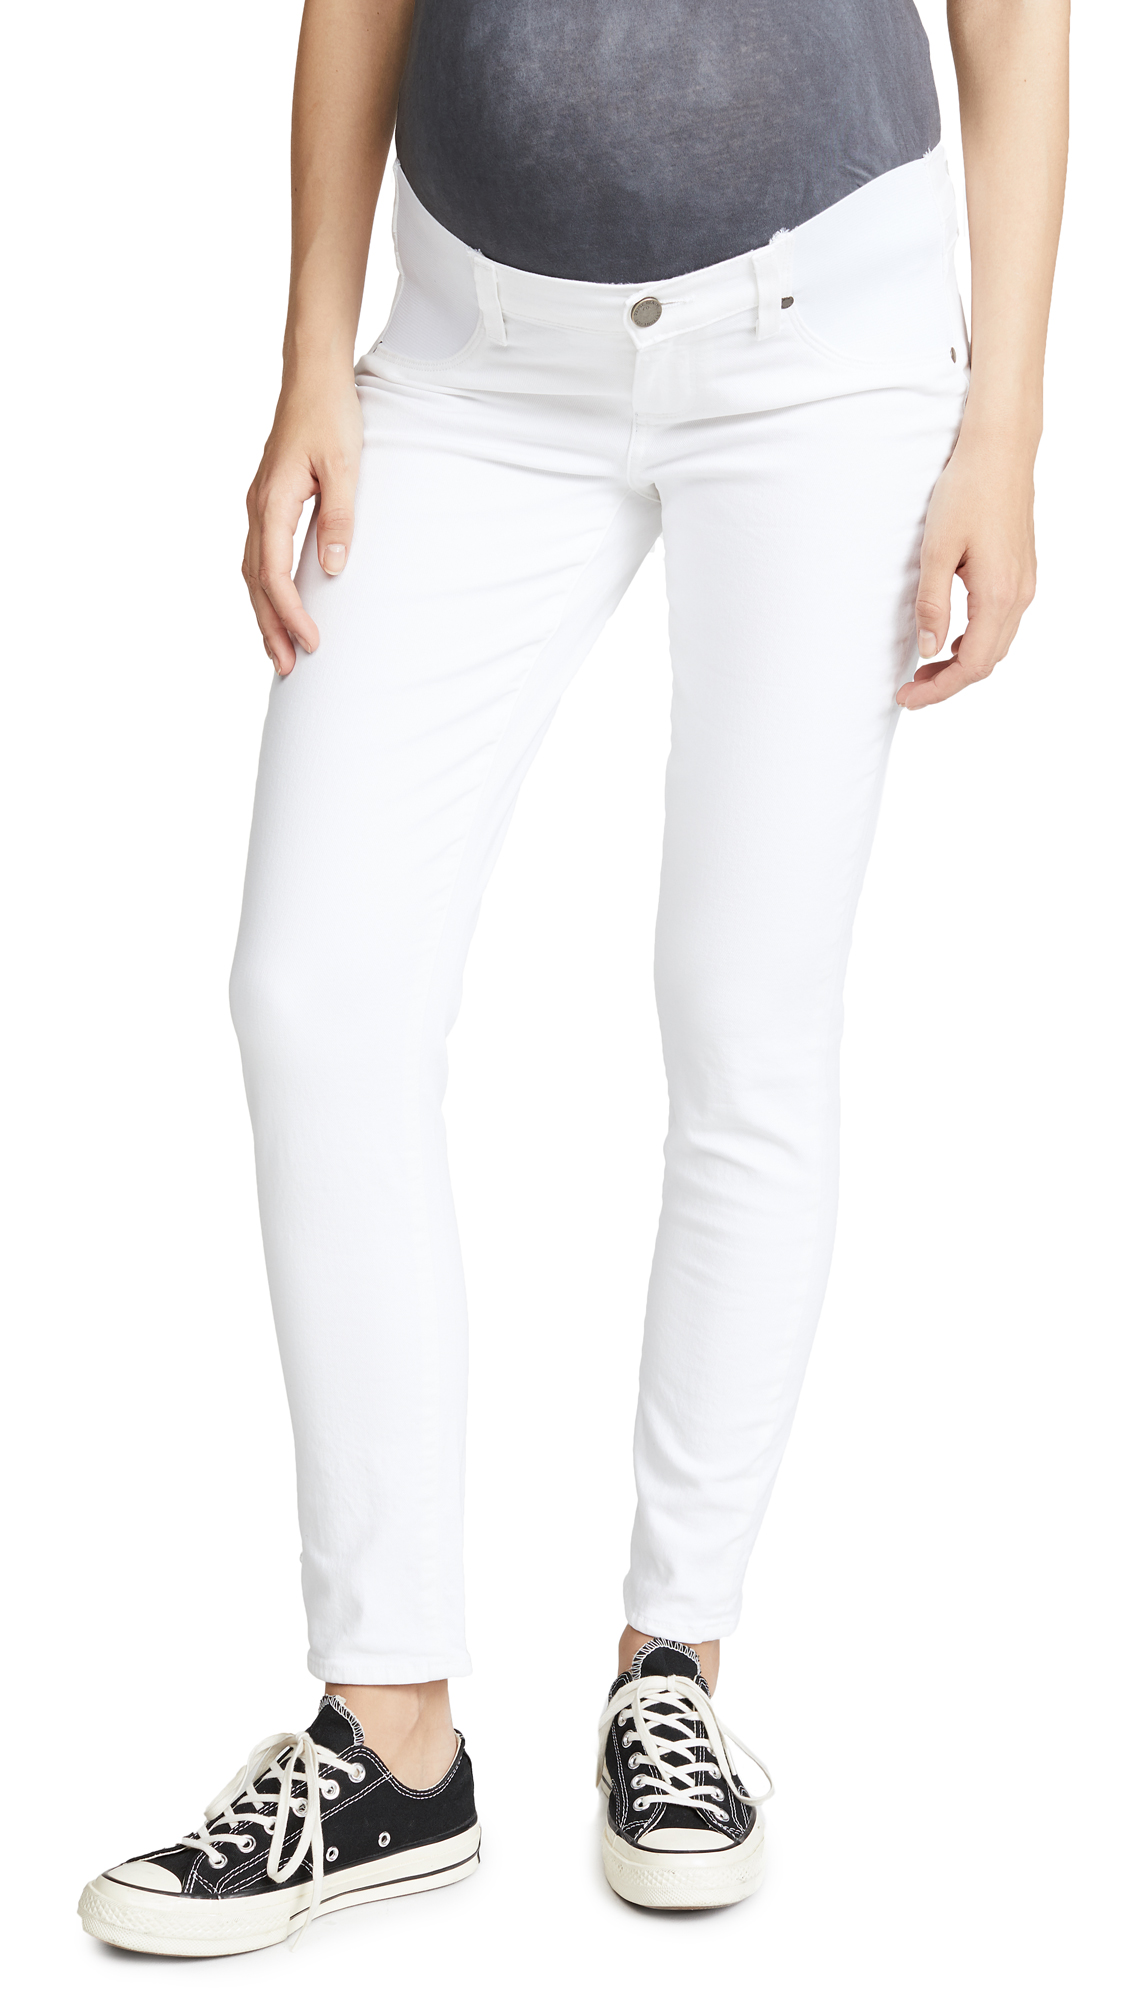 PAIGE Skyline Ankle Peg Maternity Jeans - Optic White